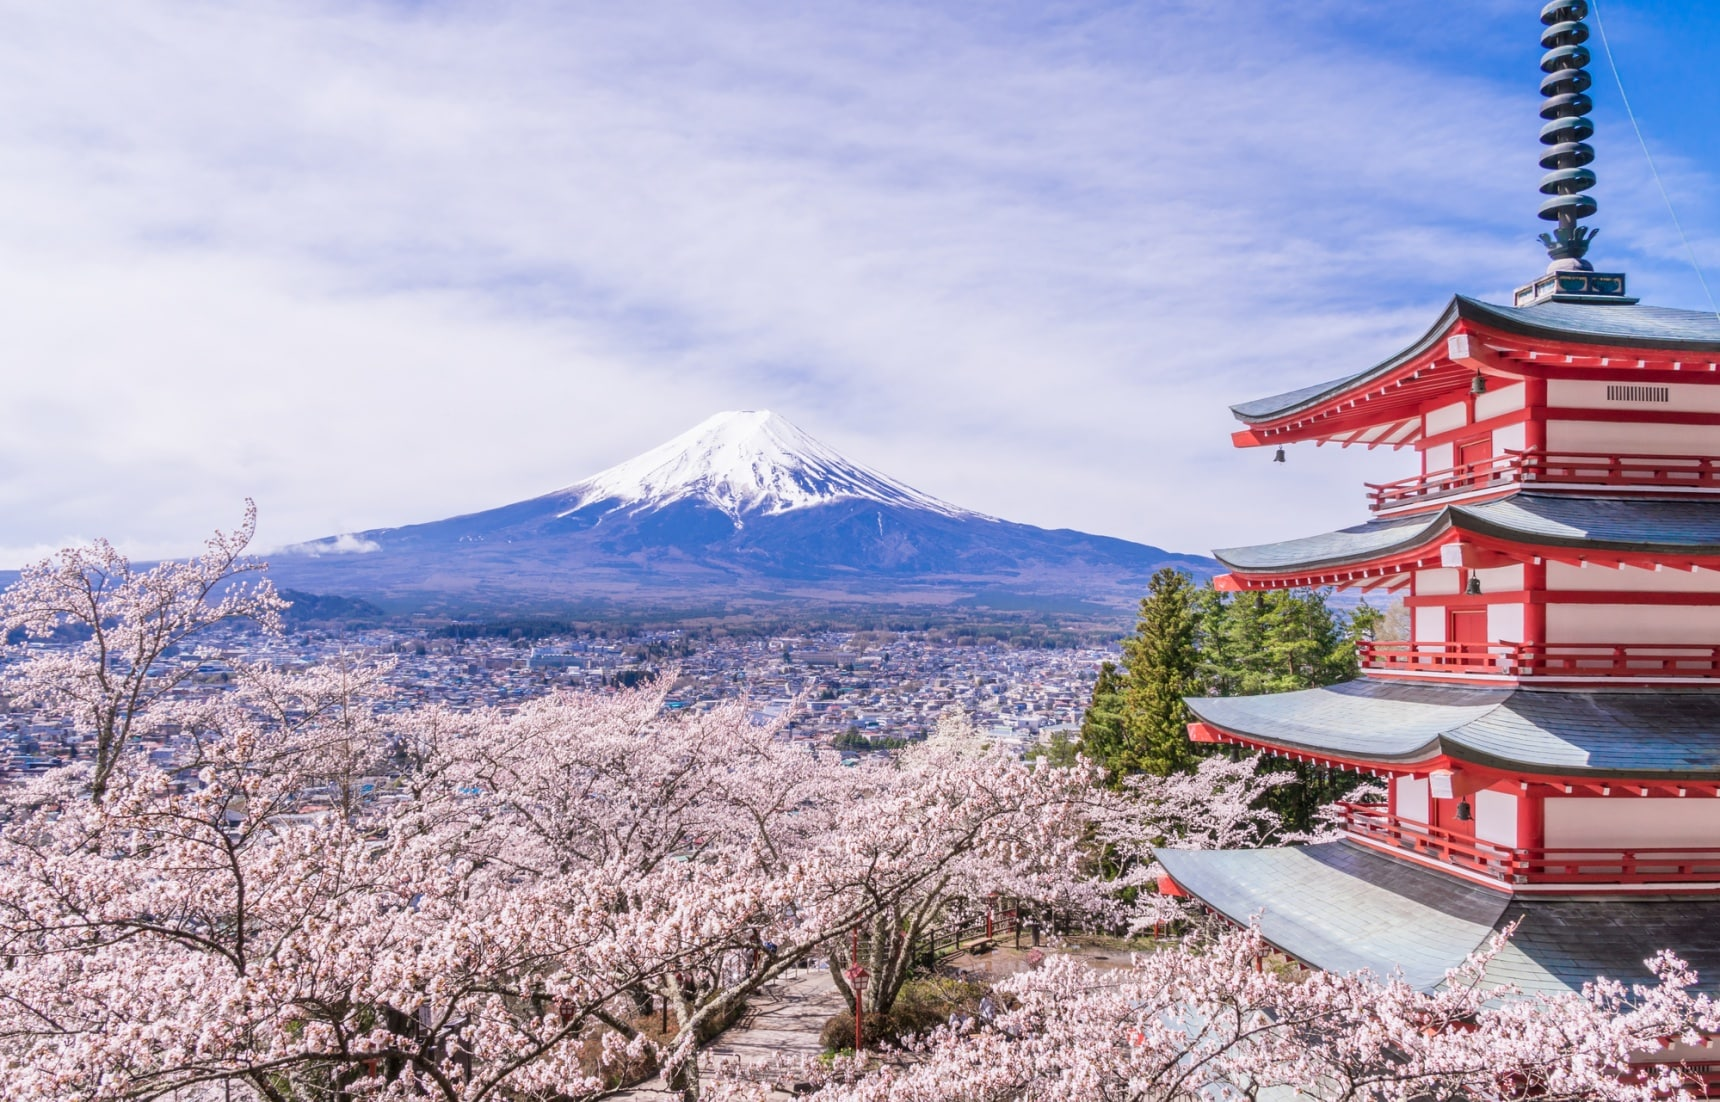 The Shrine with the Best View of Mount Fuji